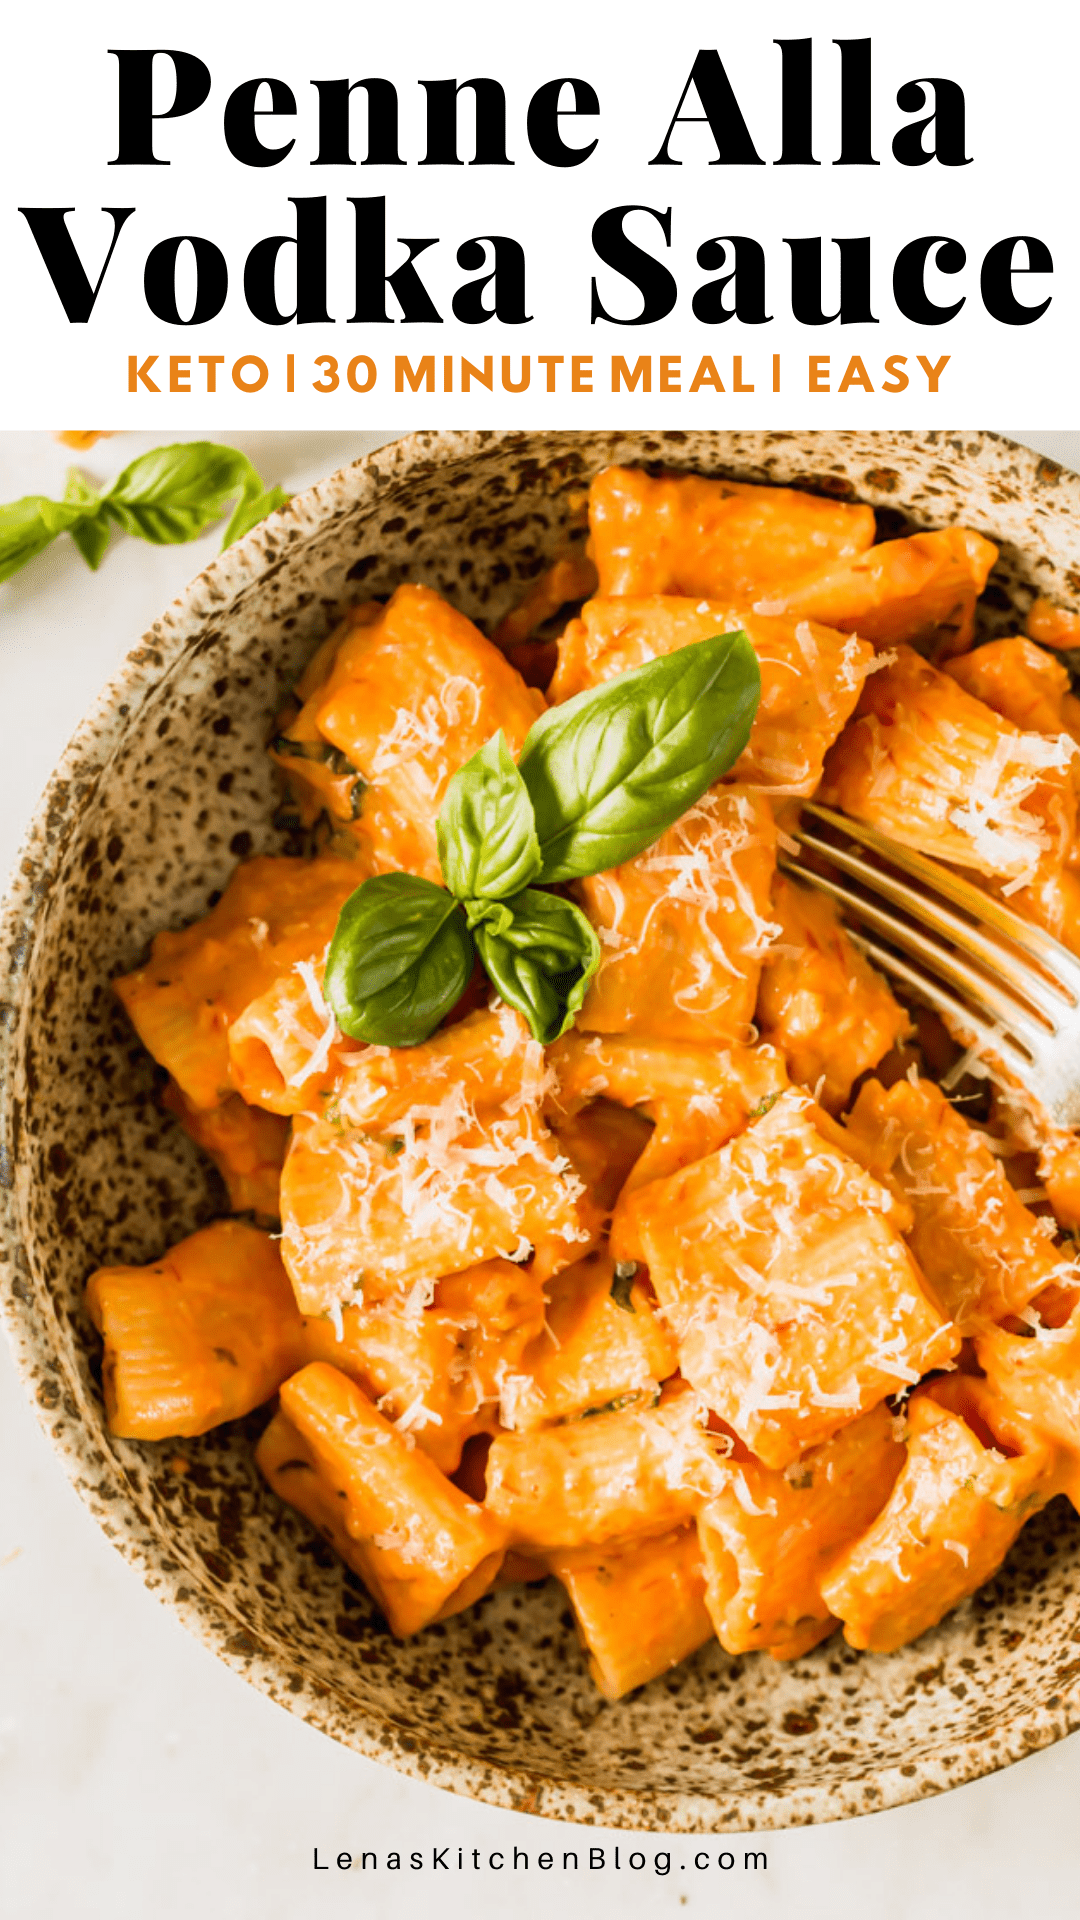 pinterest image of a bowl of orange sauce-covered pasta with cheese and basil on top.